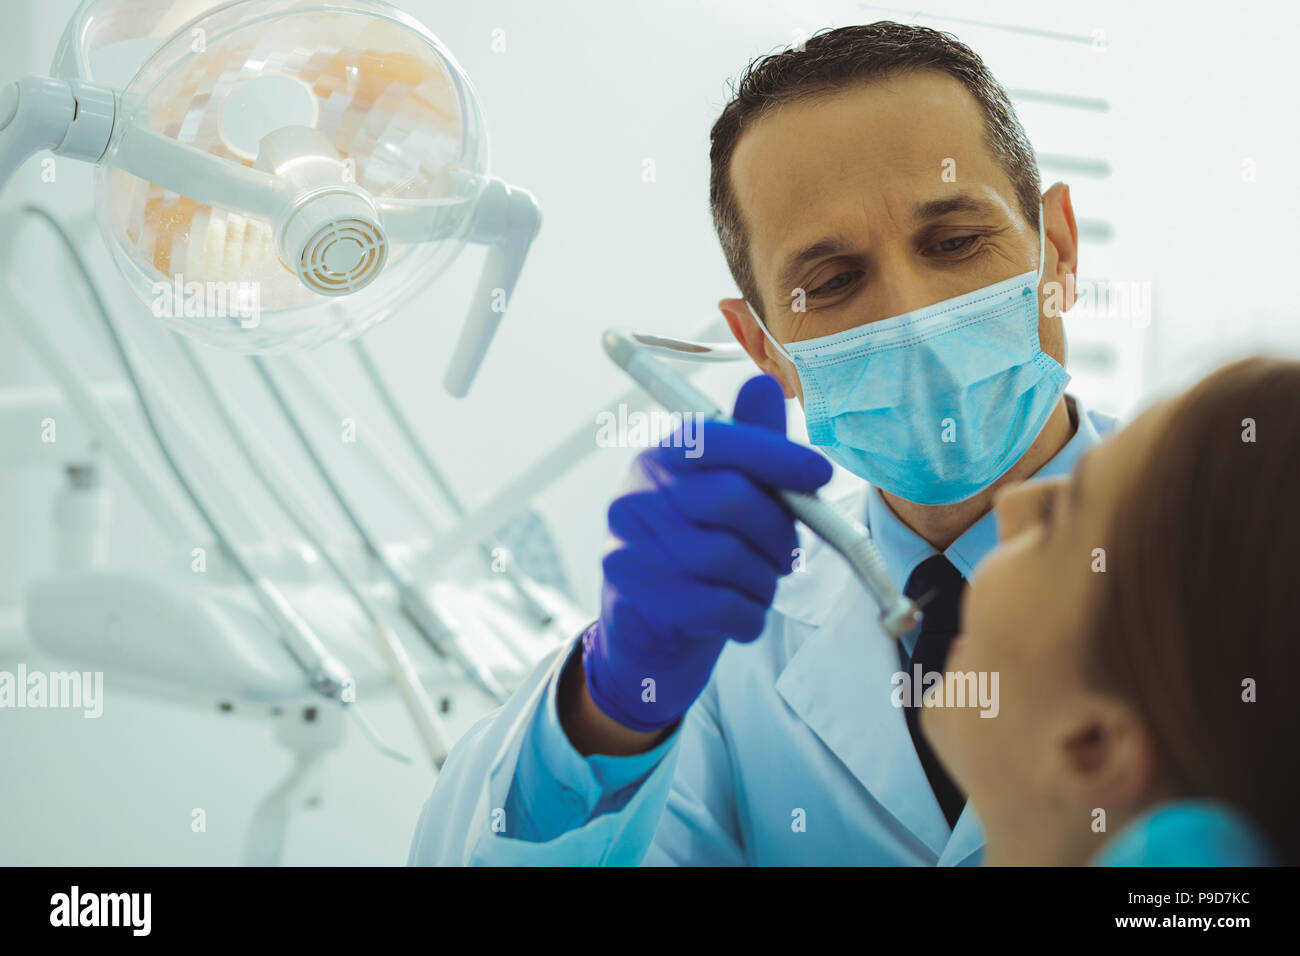 Attentive dentist treating his patient - Stock Image